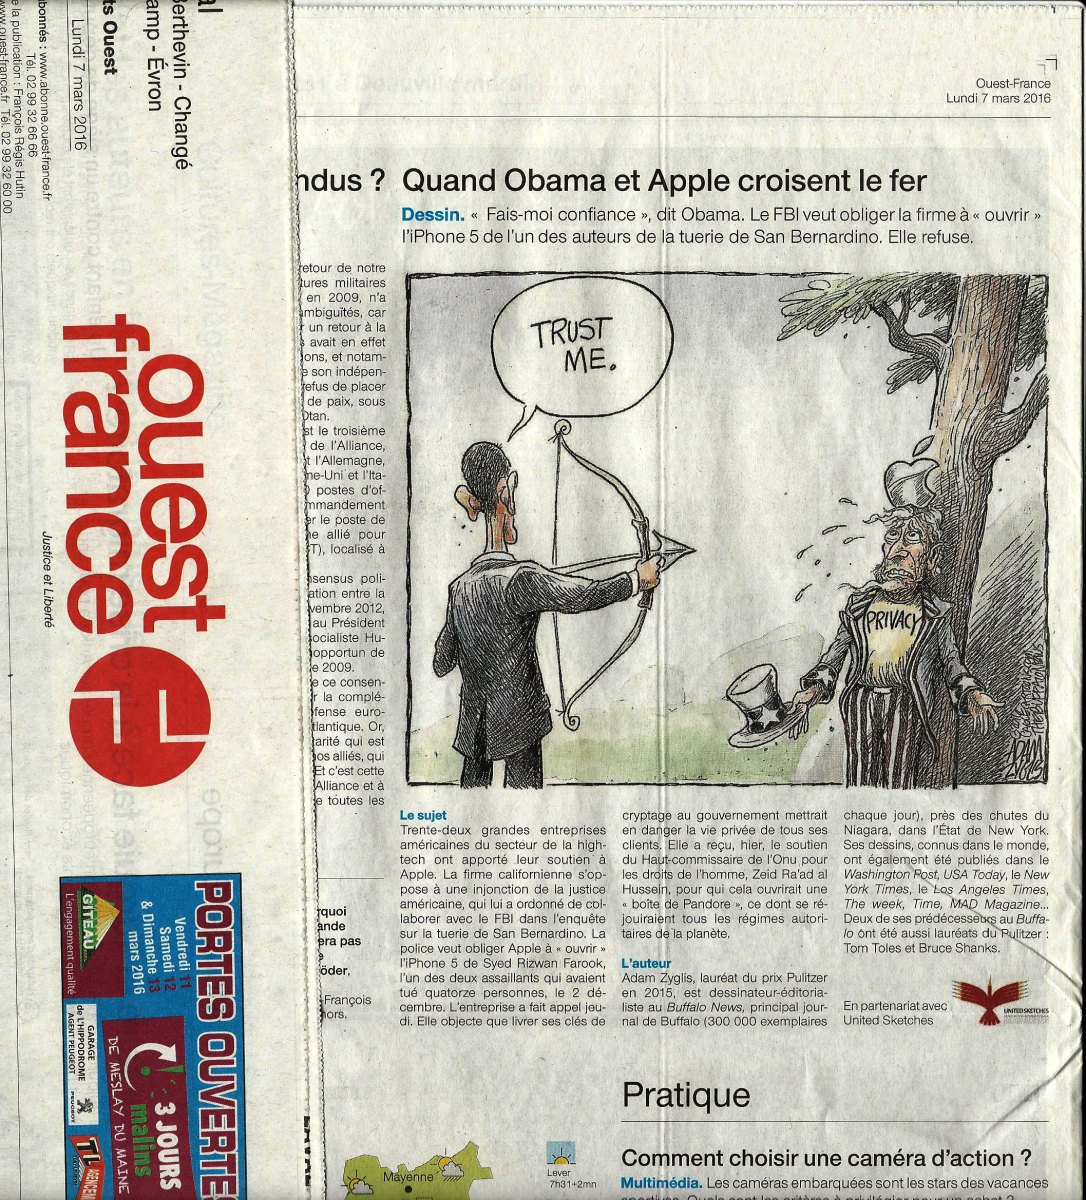 Partnership with Ouest-France the biggest French Newspaper